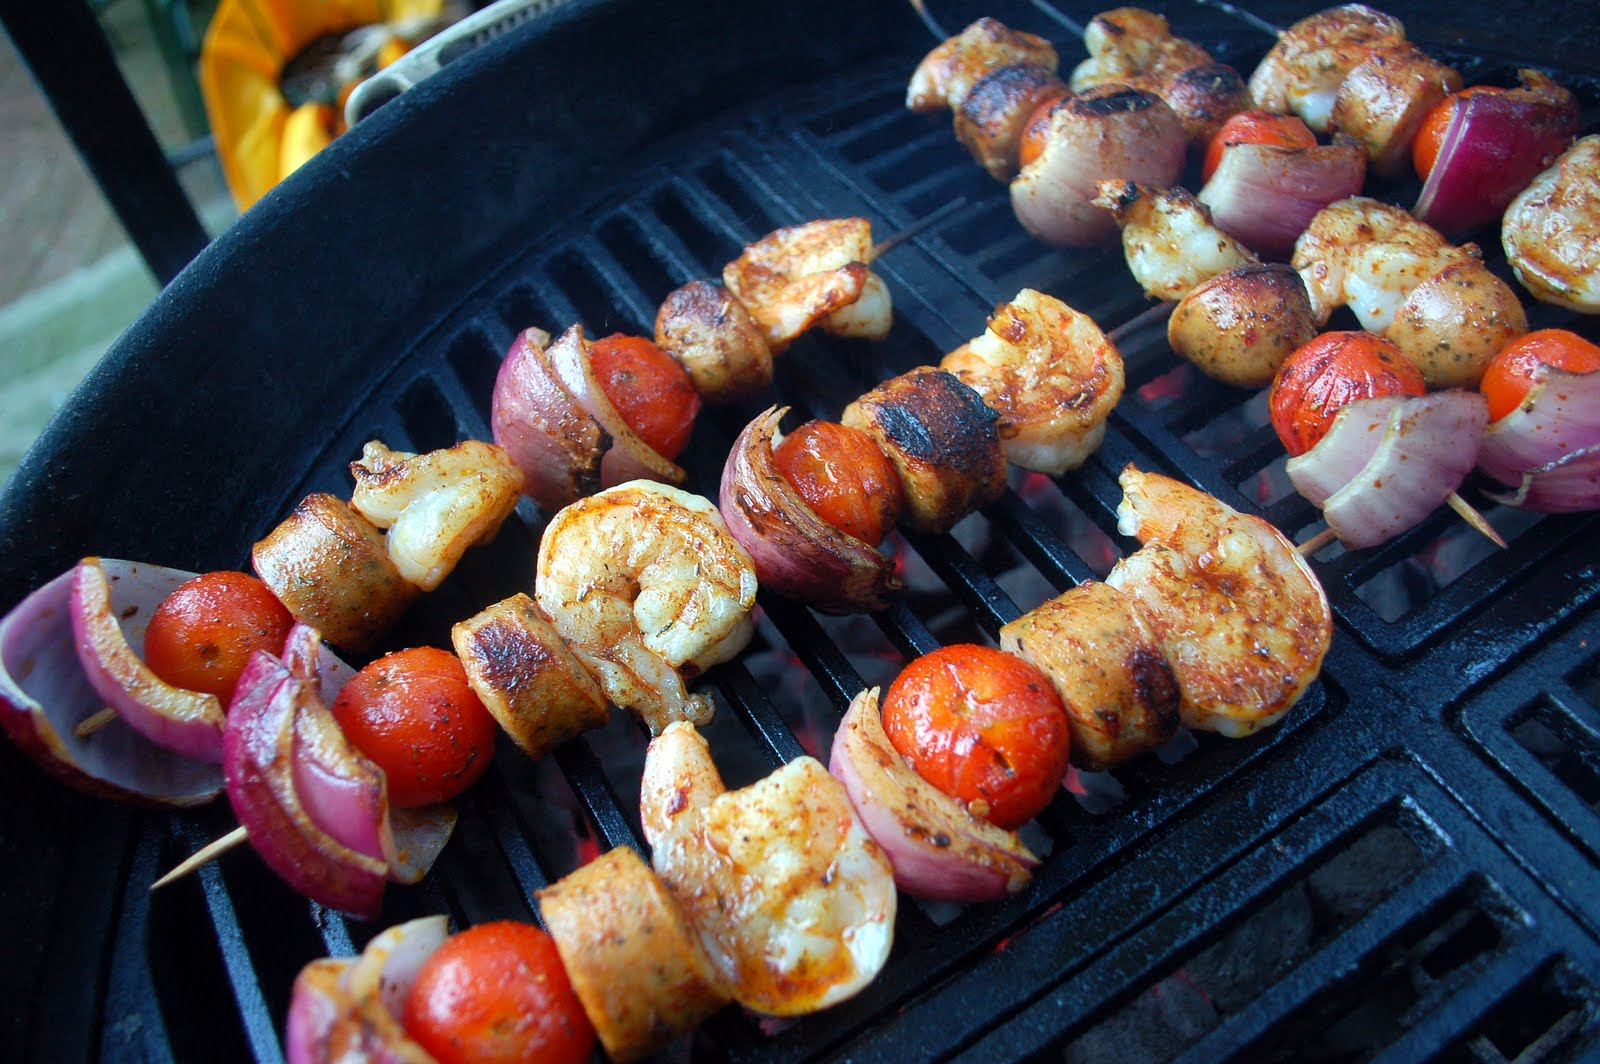 The Kitchen Sync: Grilled Shrimp and Sausage Skewers